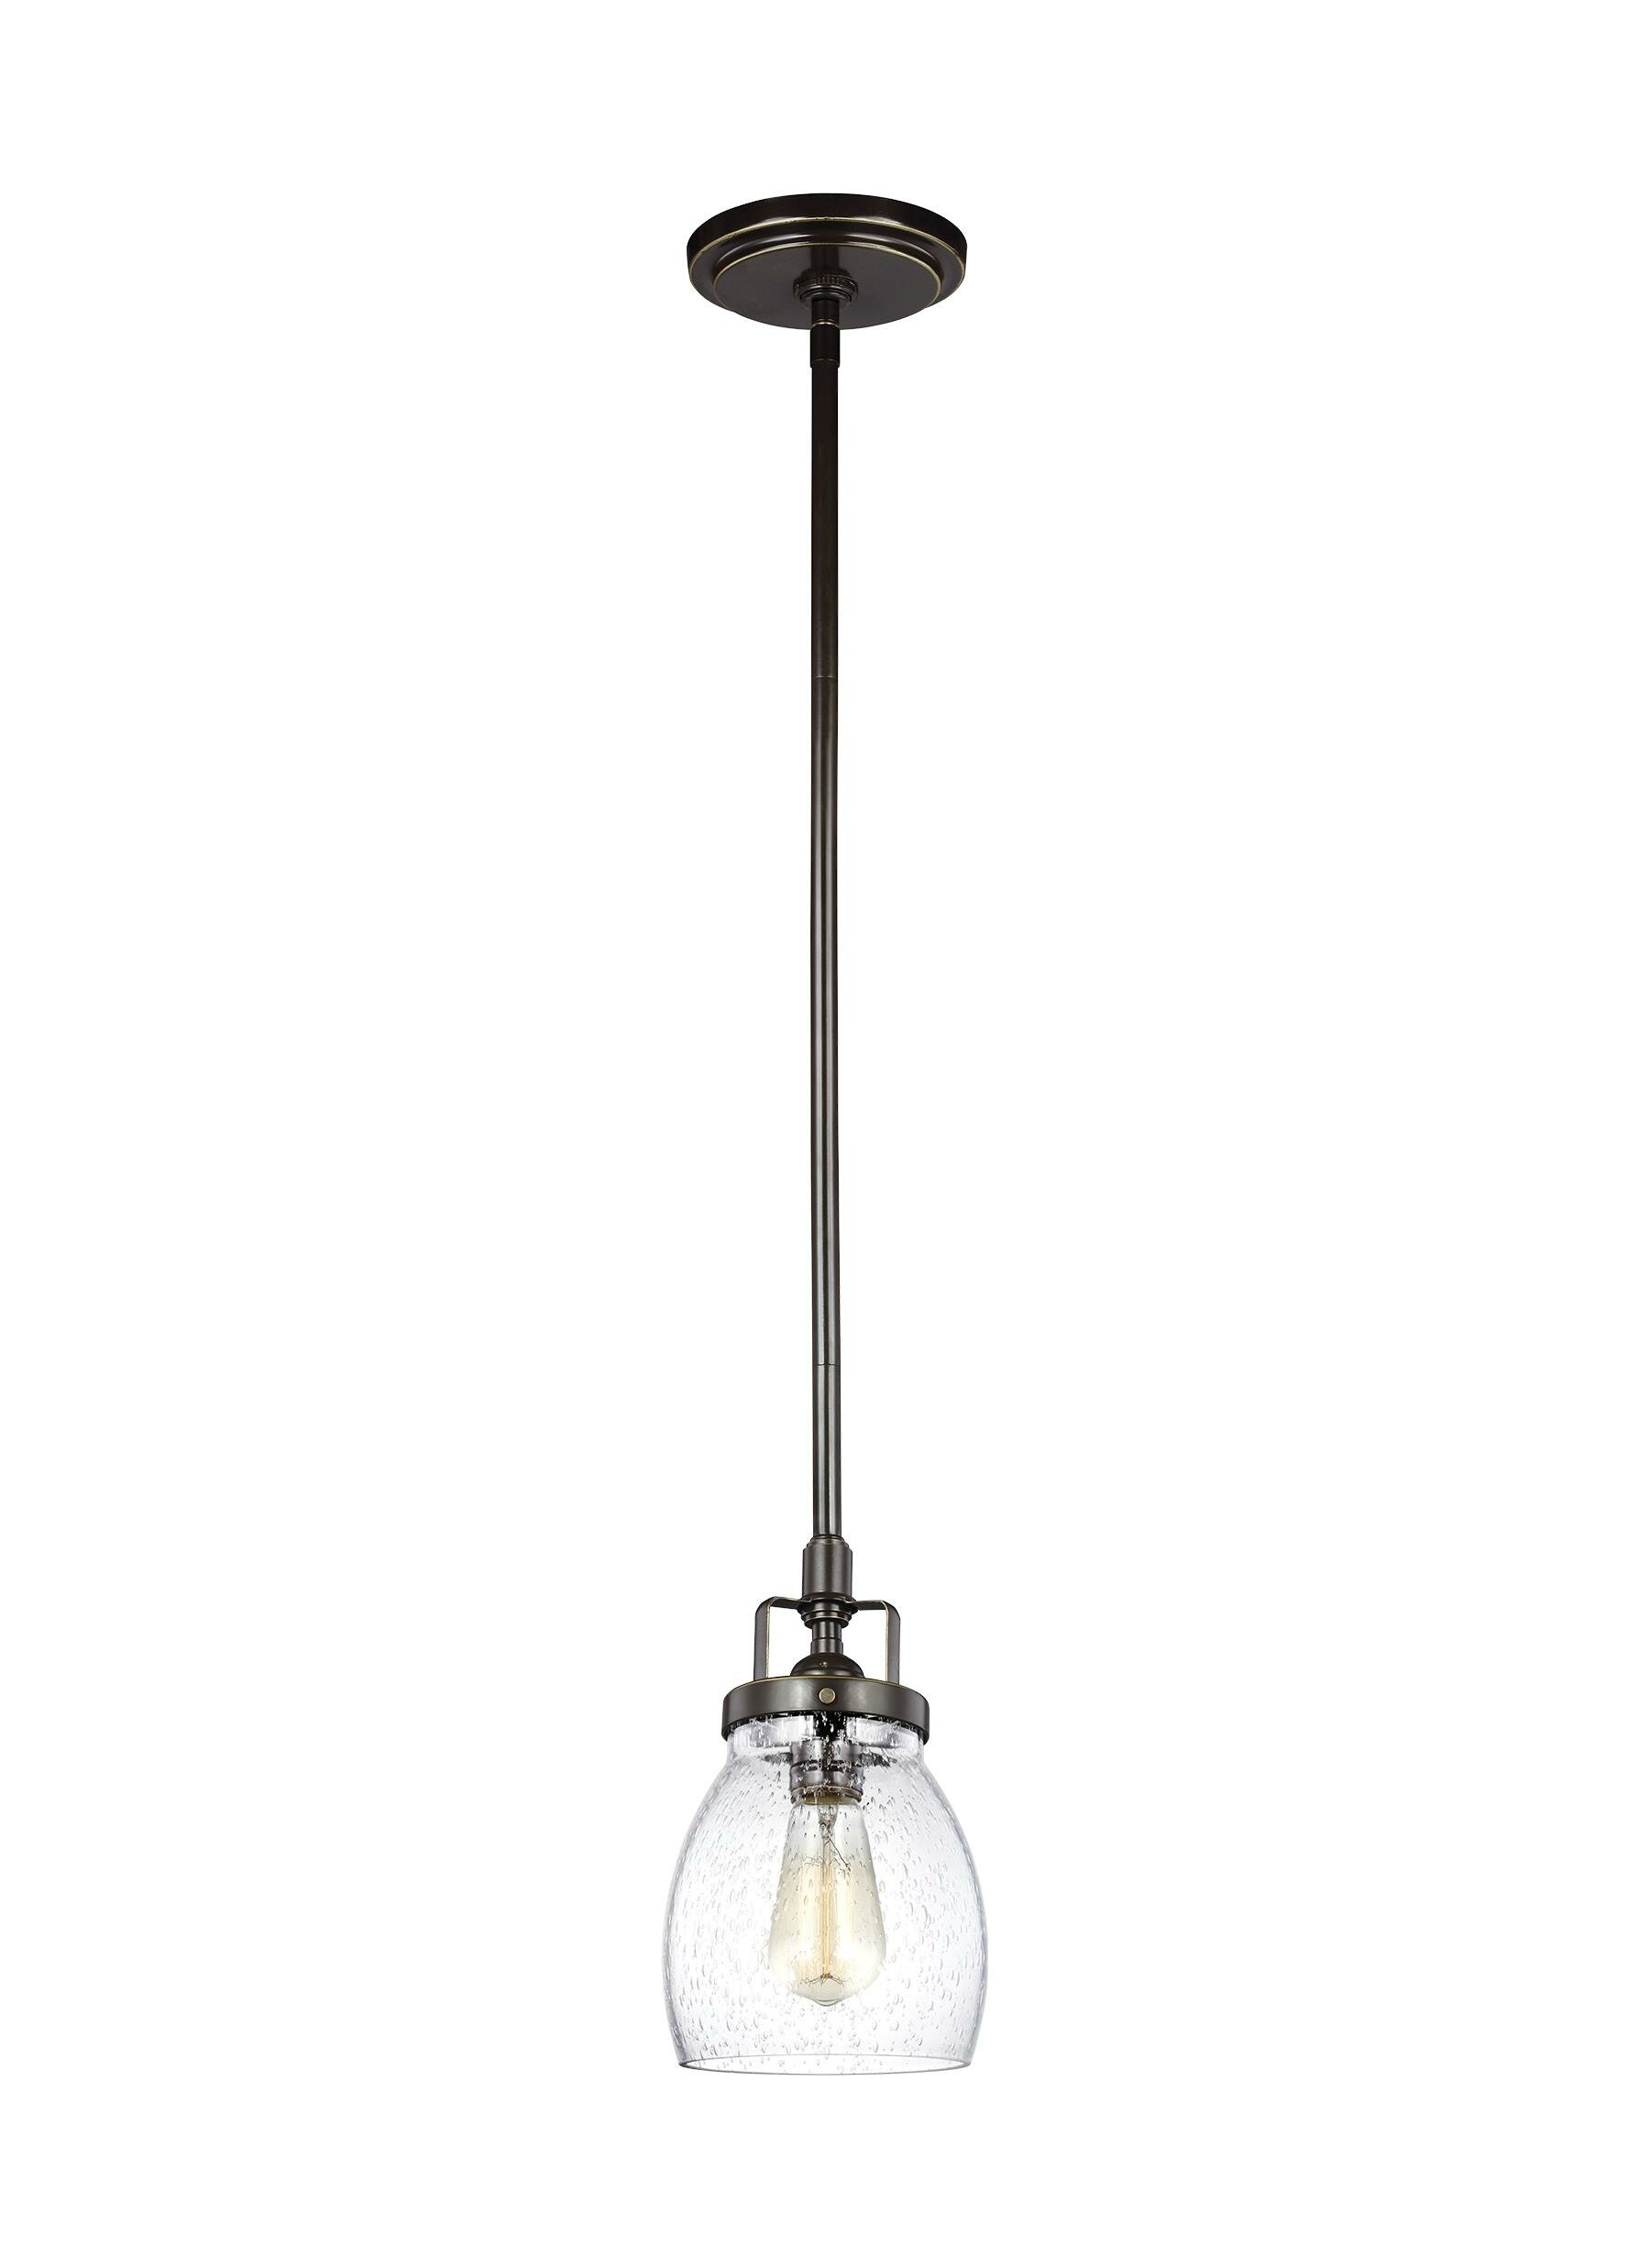 Trent Austin Design Houon 1 Light Single Bell Pendant Reviews Wayfair